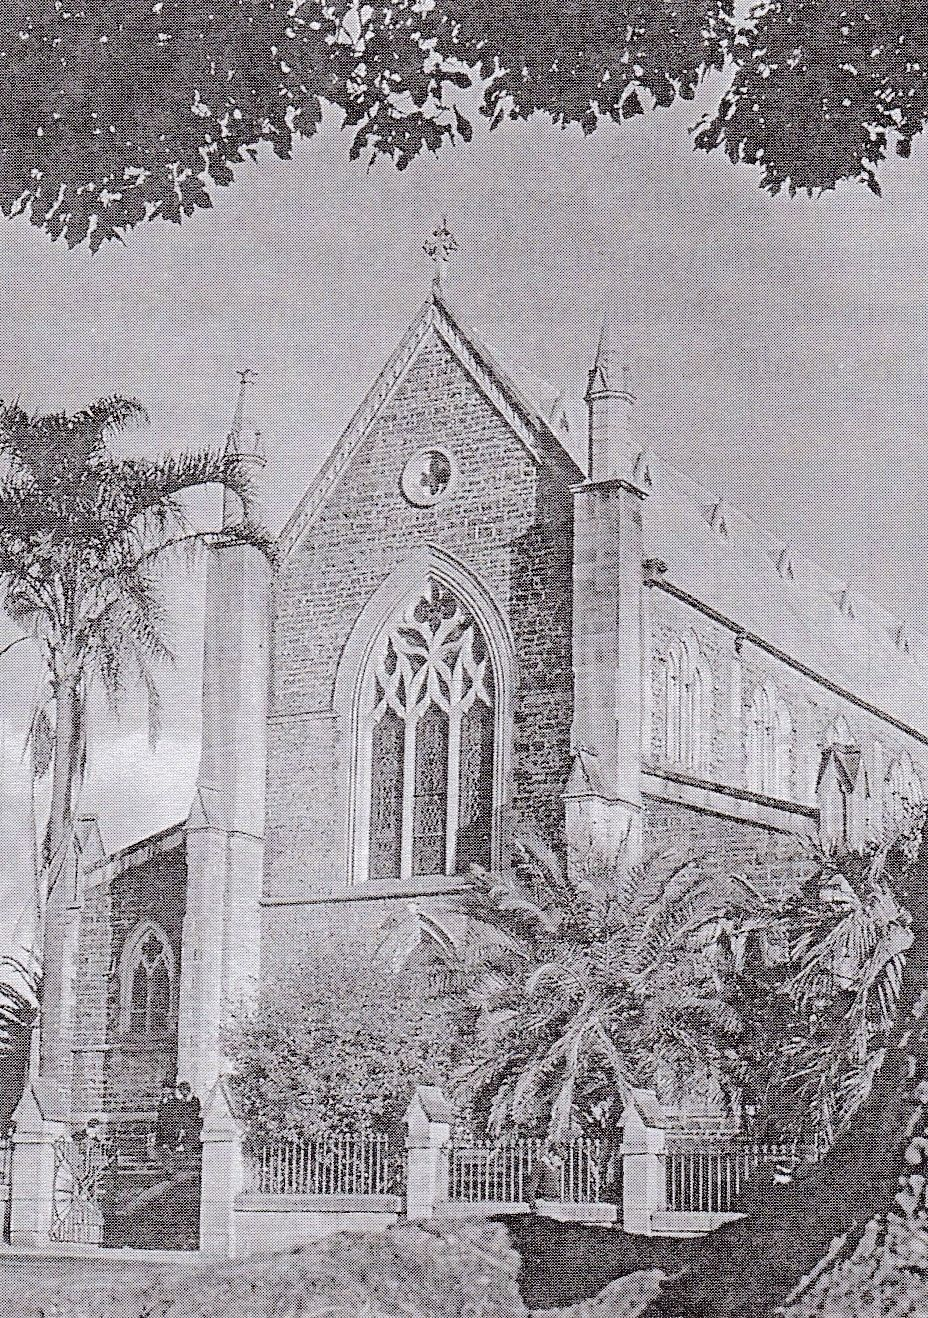 St Patrick's Cathedral in 1950.